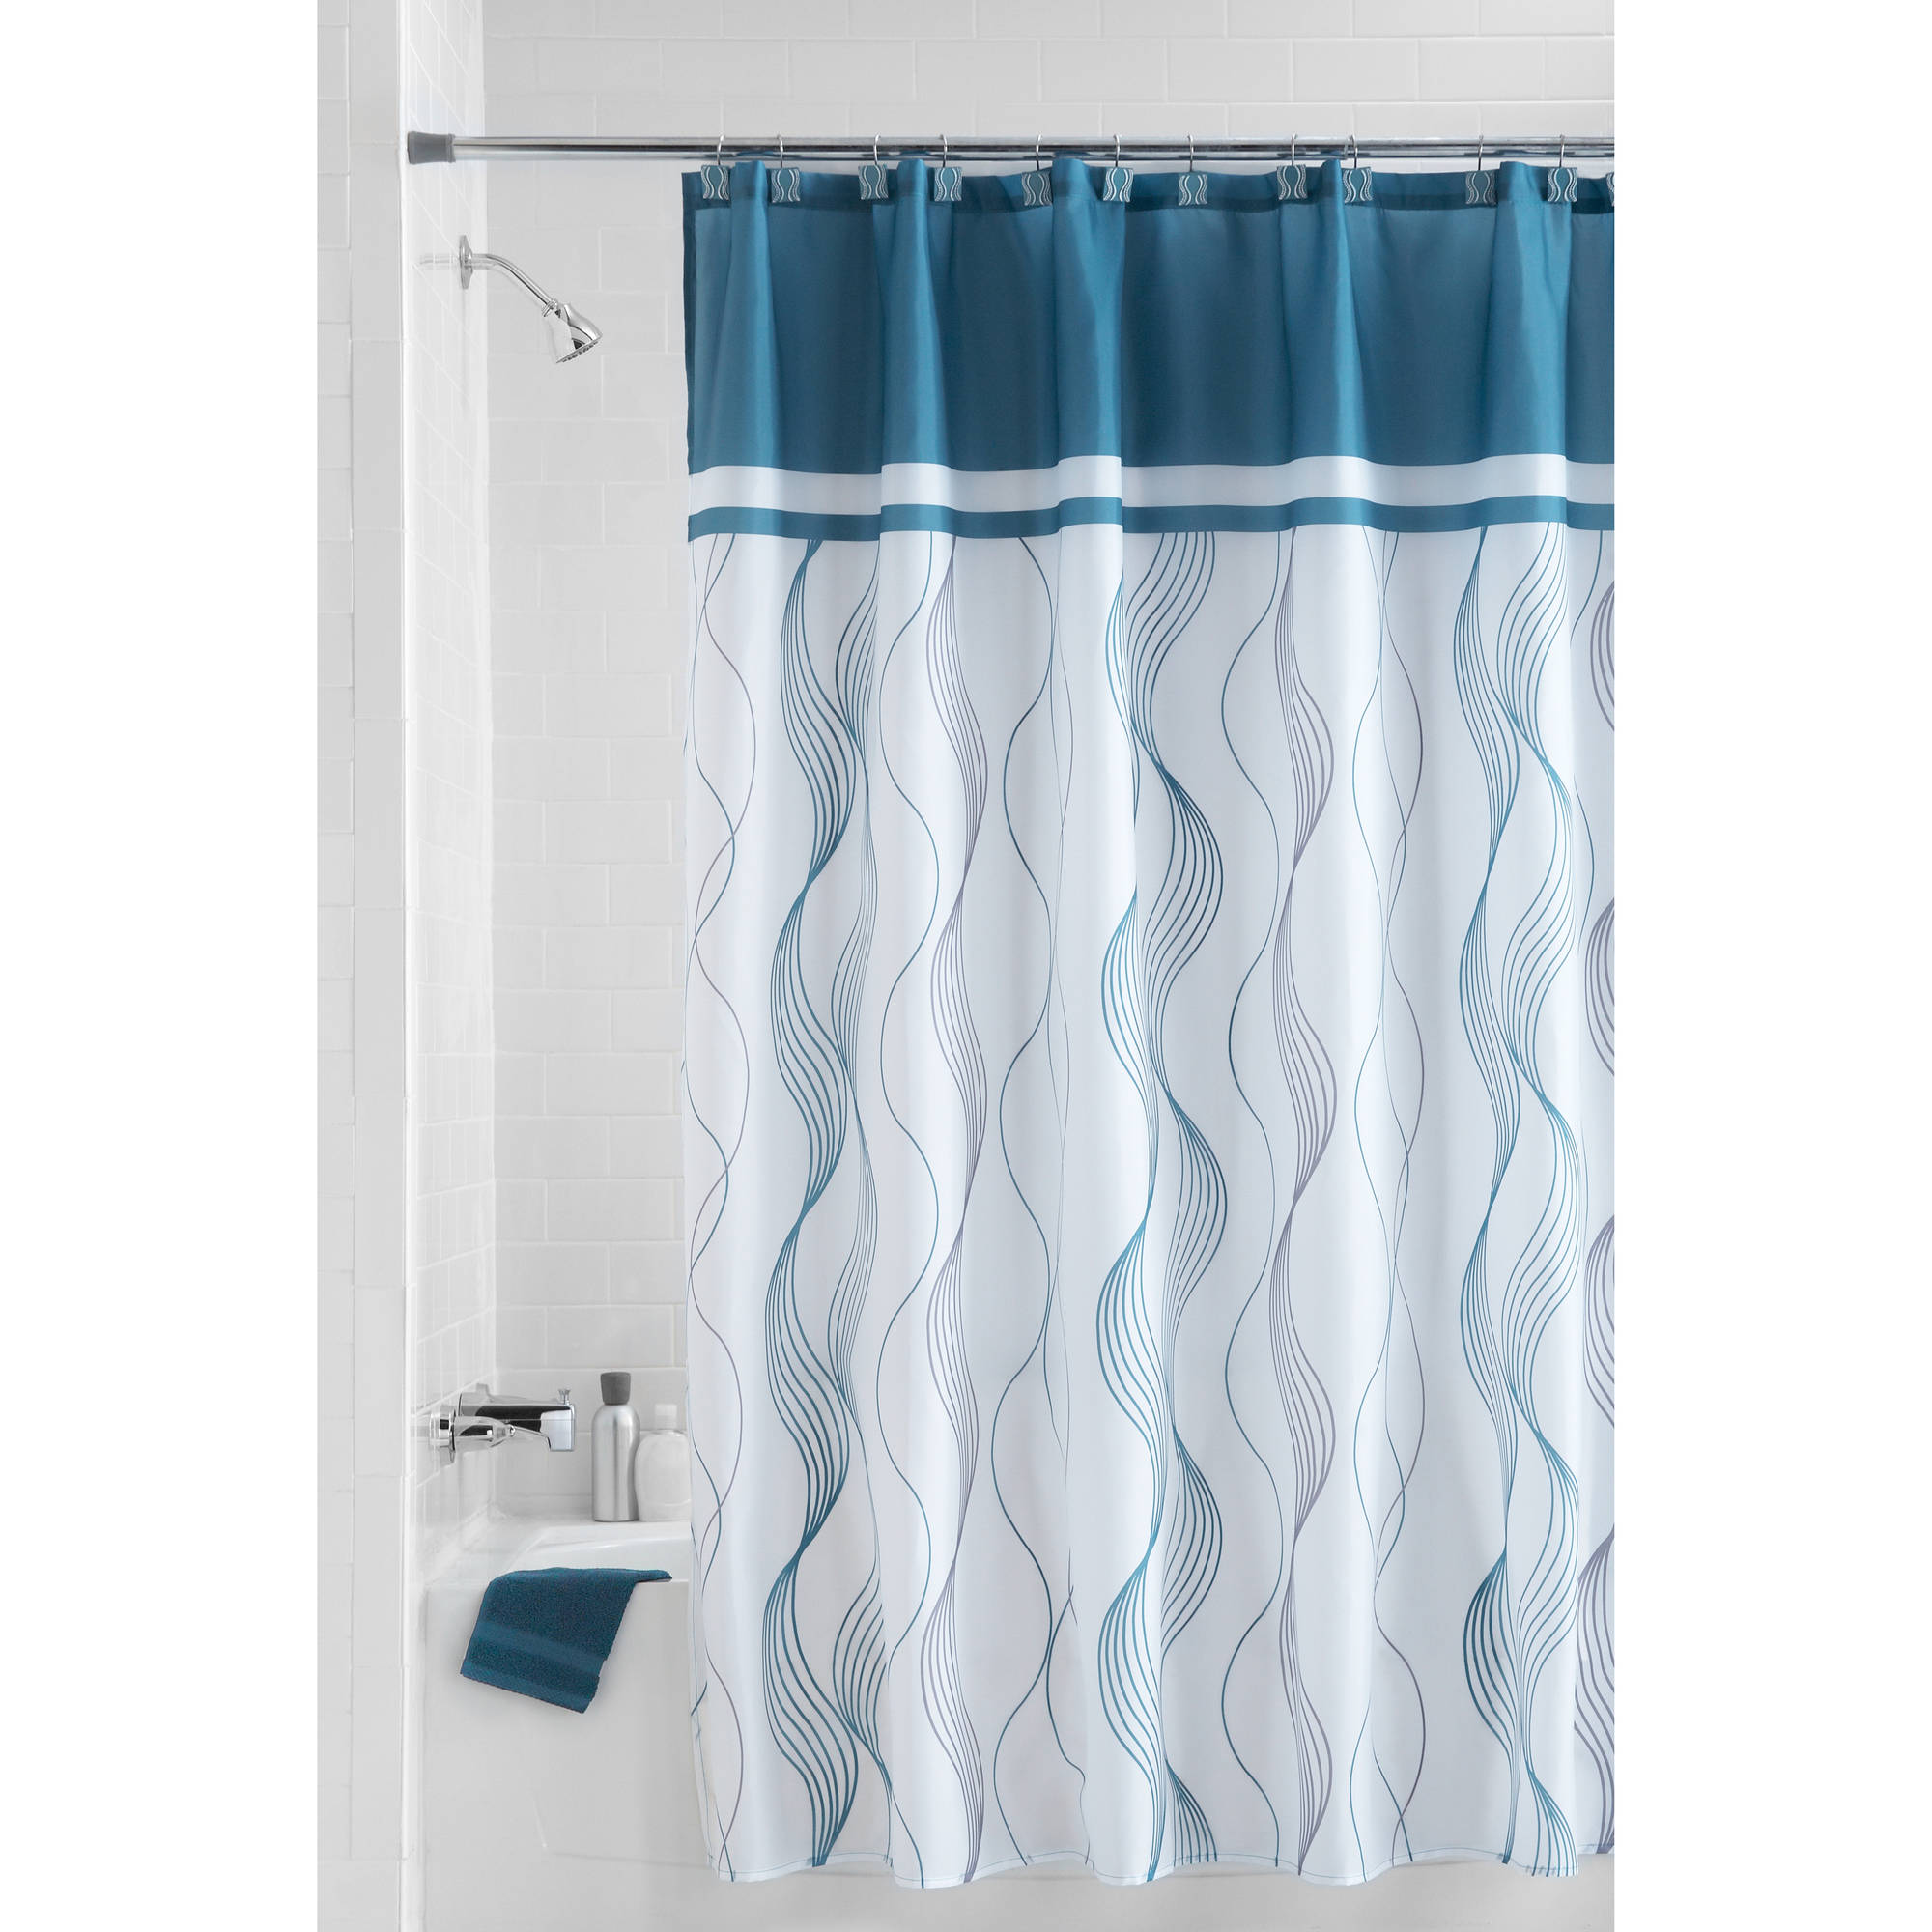 Mainstays Teal Cosmo Fabric Shower Curtain Set With Shower Curtain